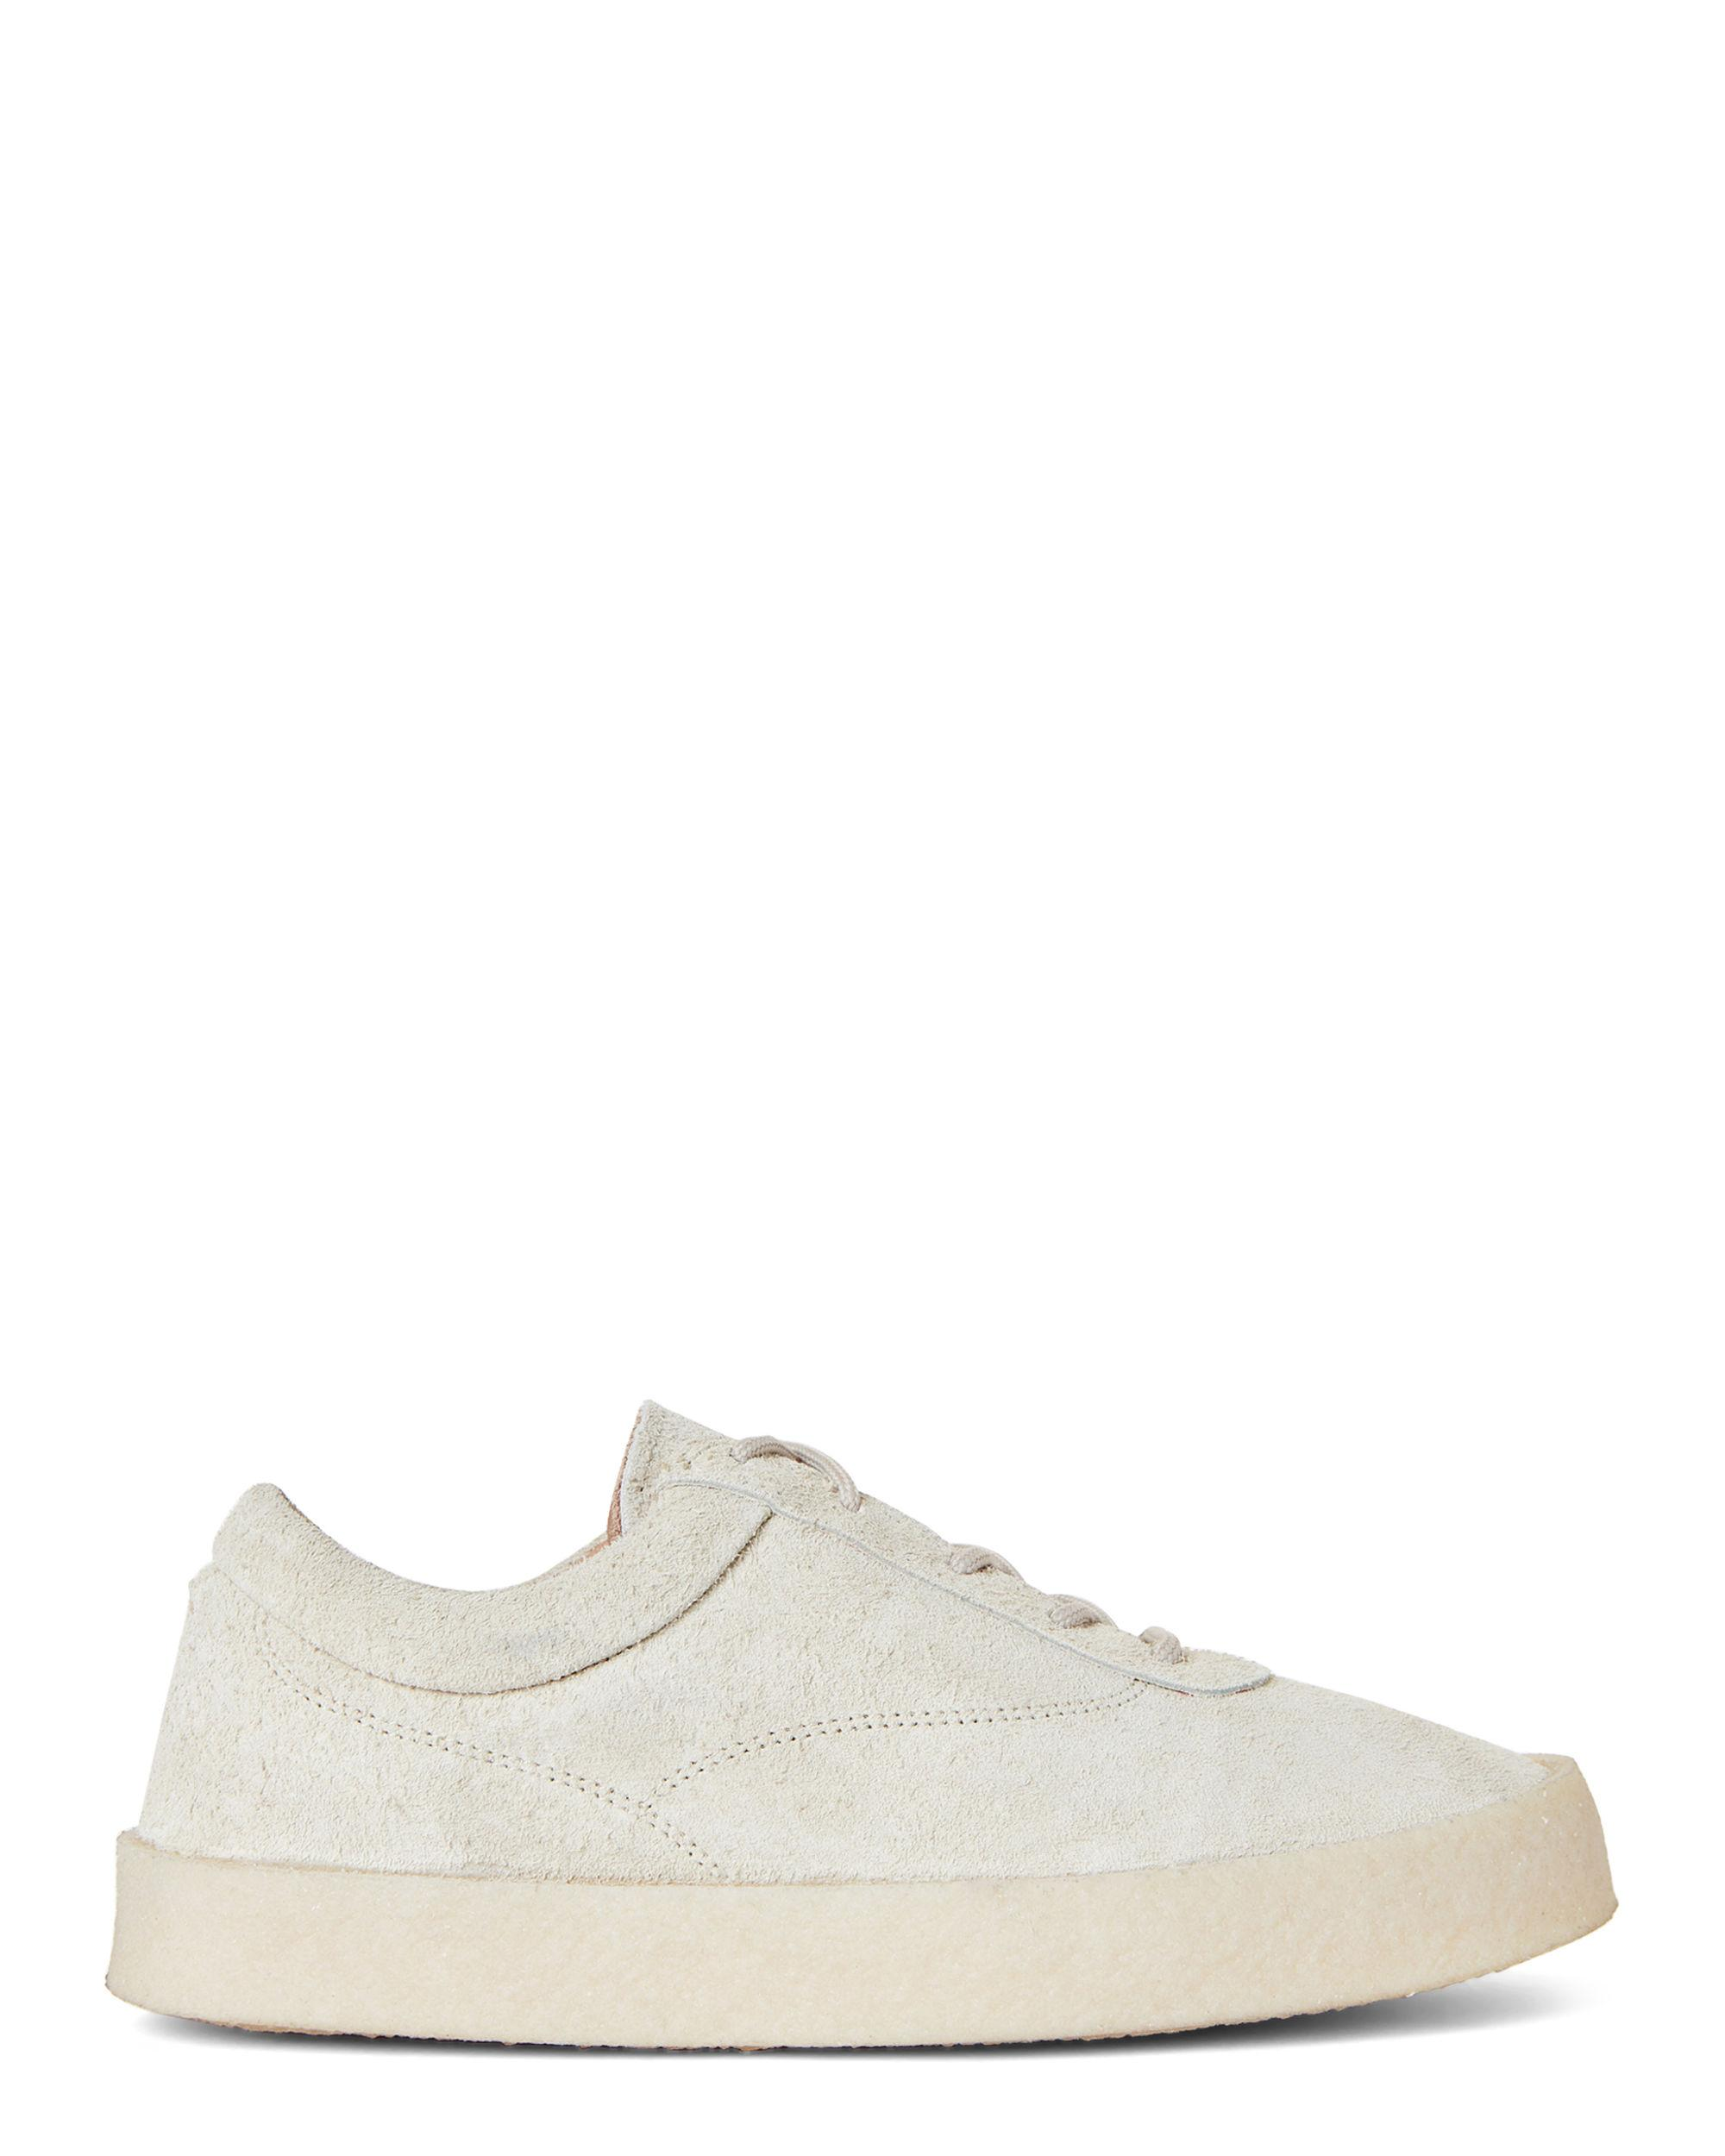 3cefadf75a351 Lyst - Yeezy Chalk Season 6 Suede Low-top Sneakers for Men